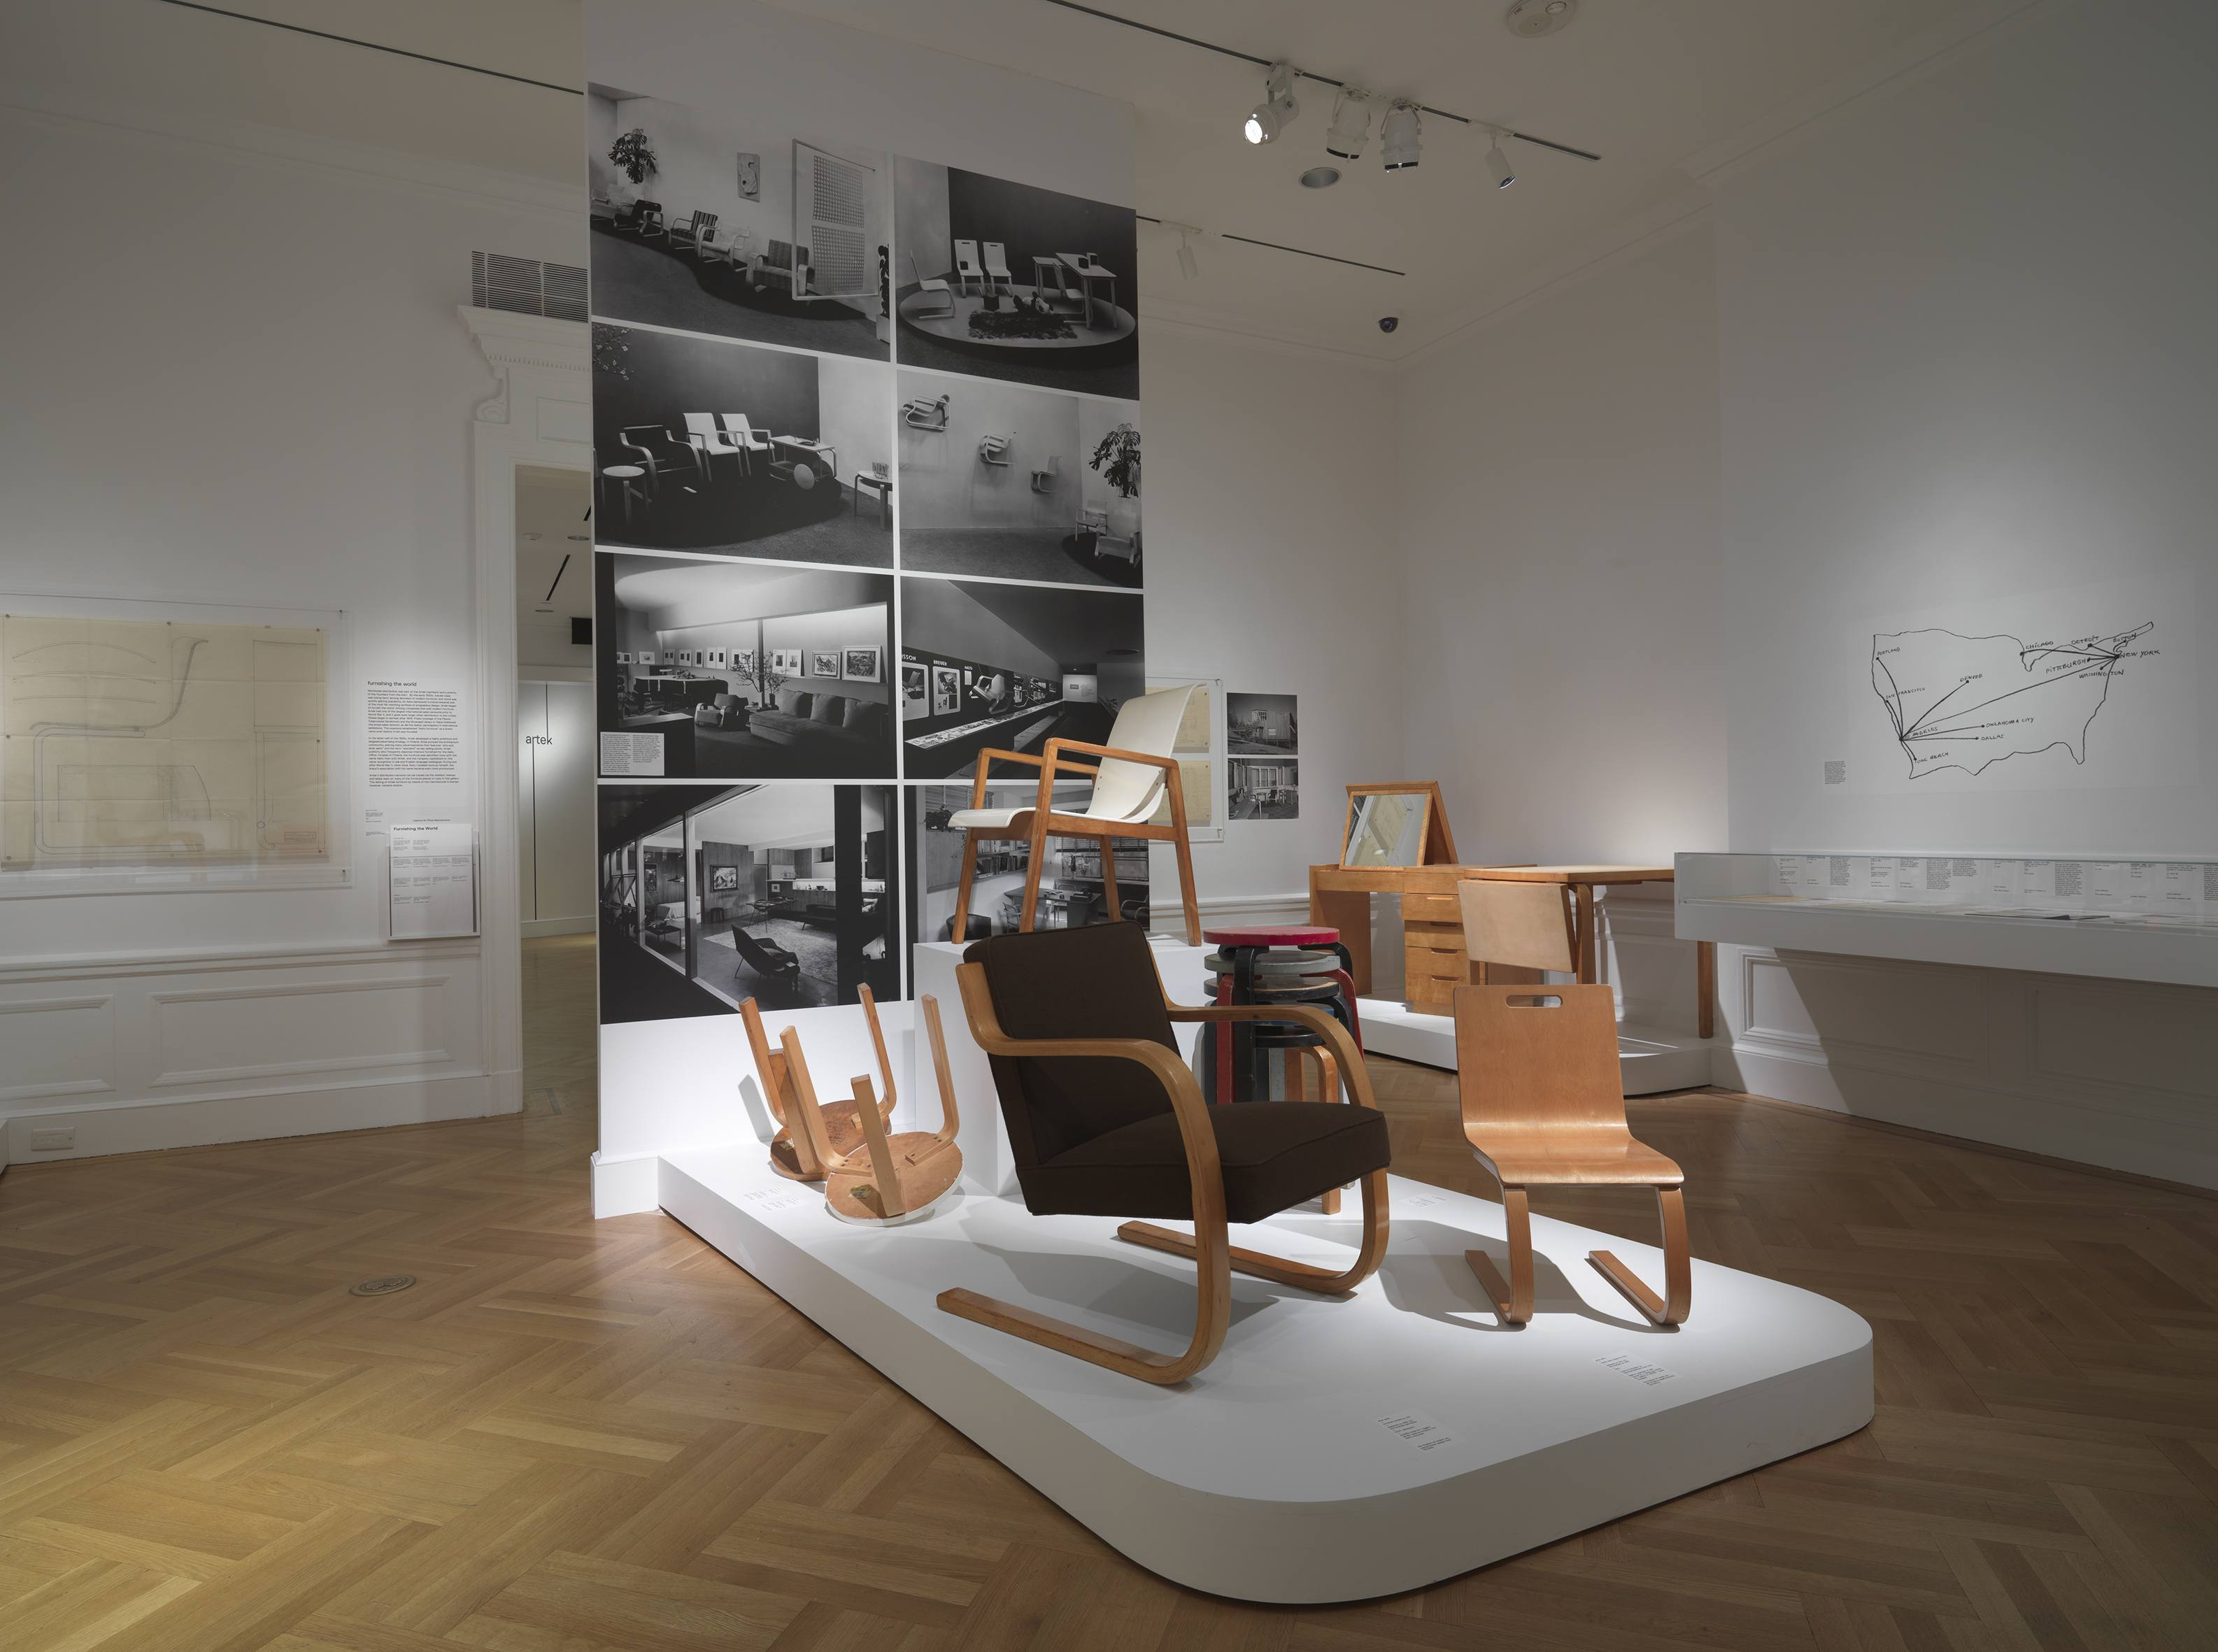 Furniture Design Nyc the best design museums in new york city | 6sqft